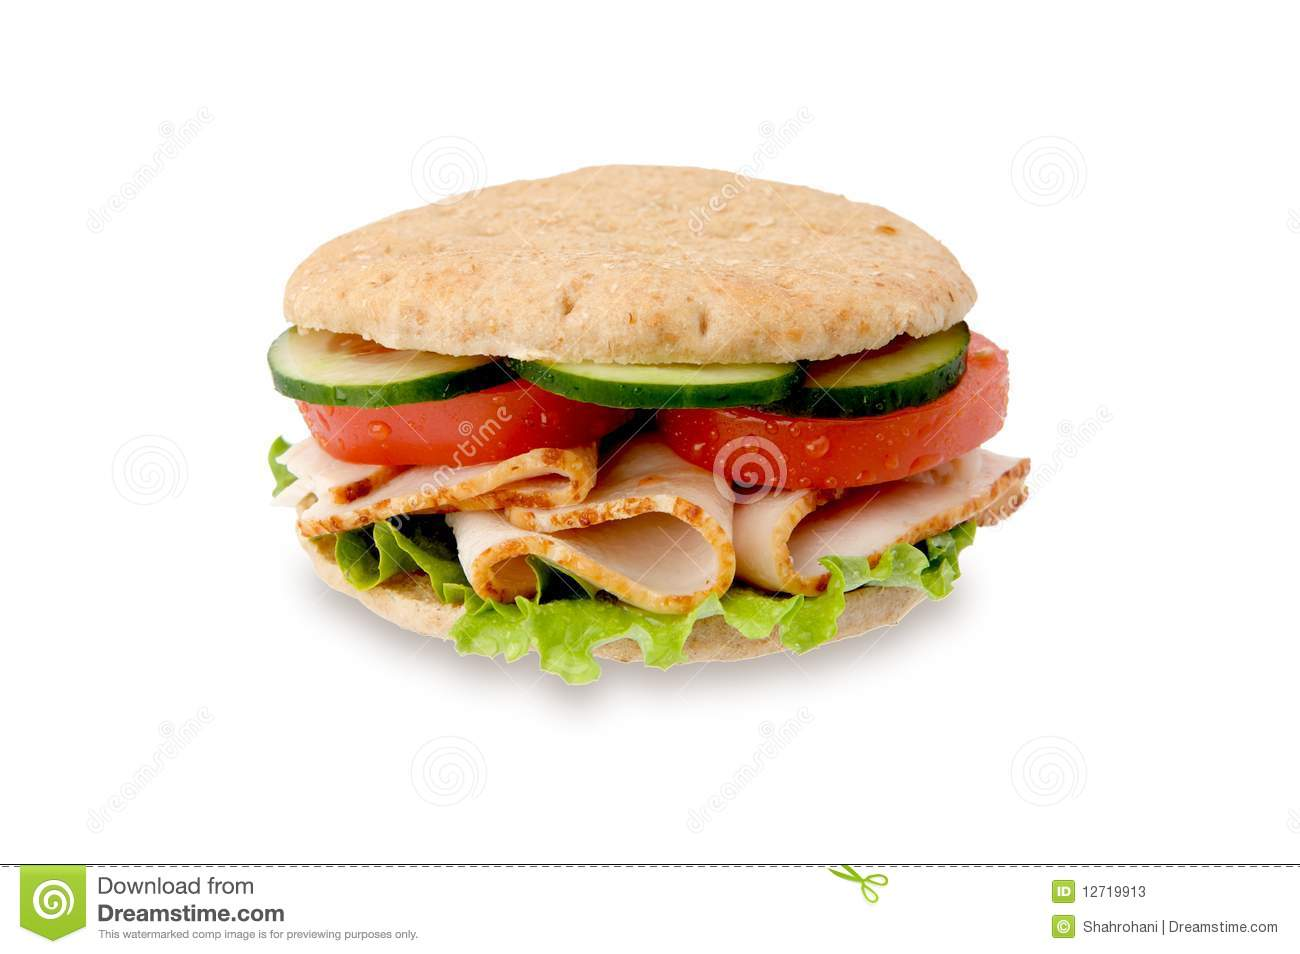 Healthy turkey sandwich isolated on white background.